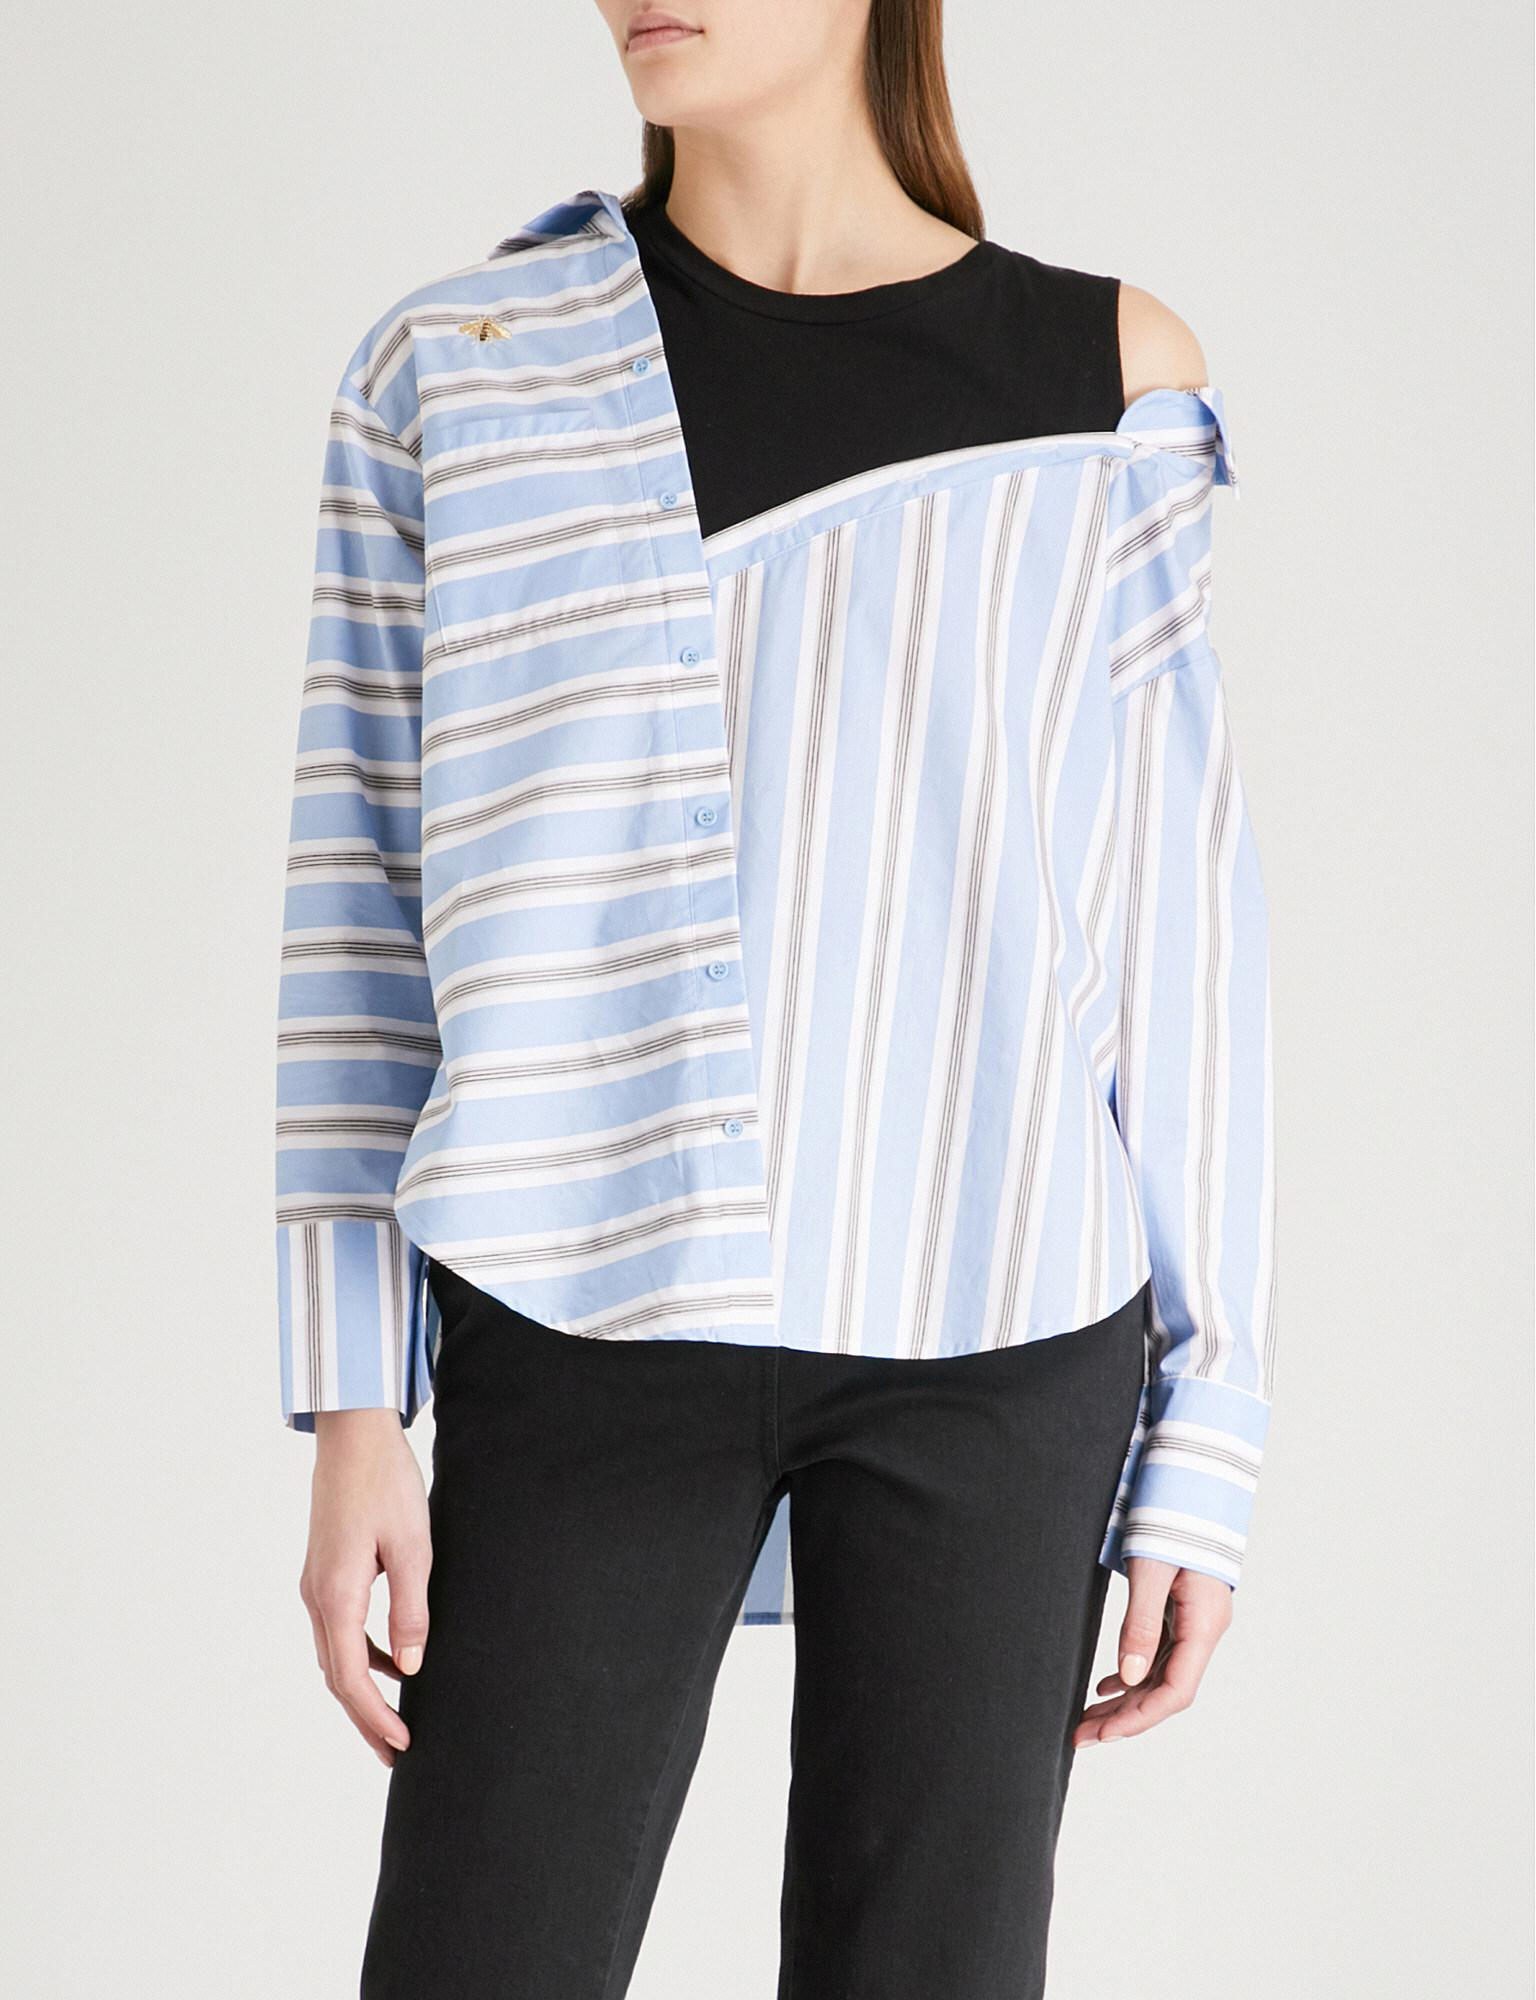 95b1e80578 Maje Striped Cotton And Jersey Shirt in Blue - Lyst